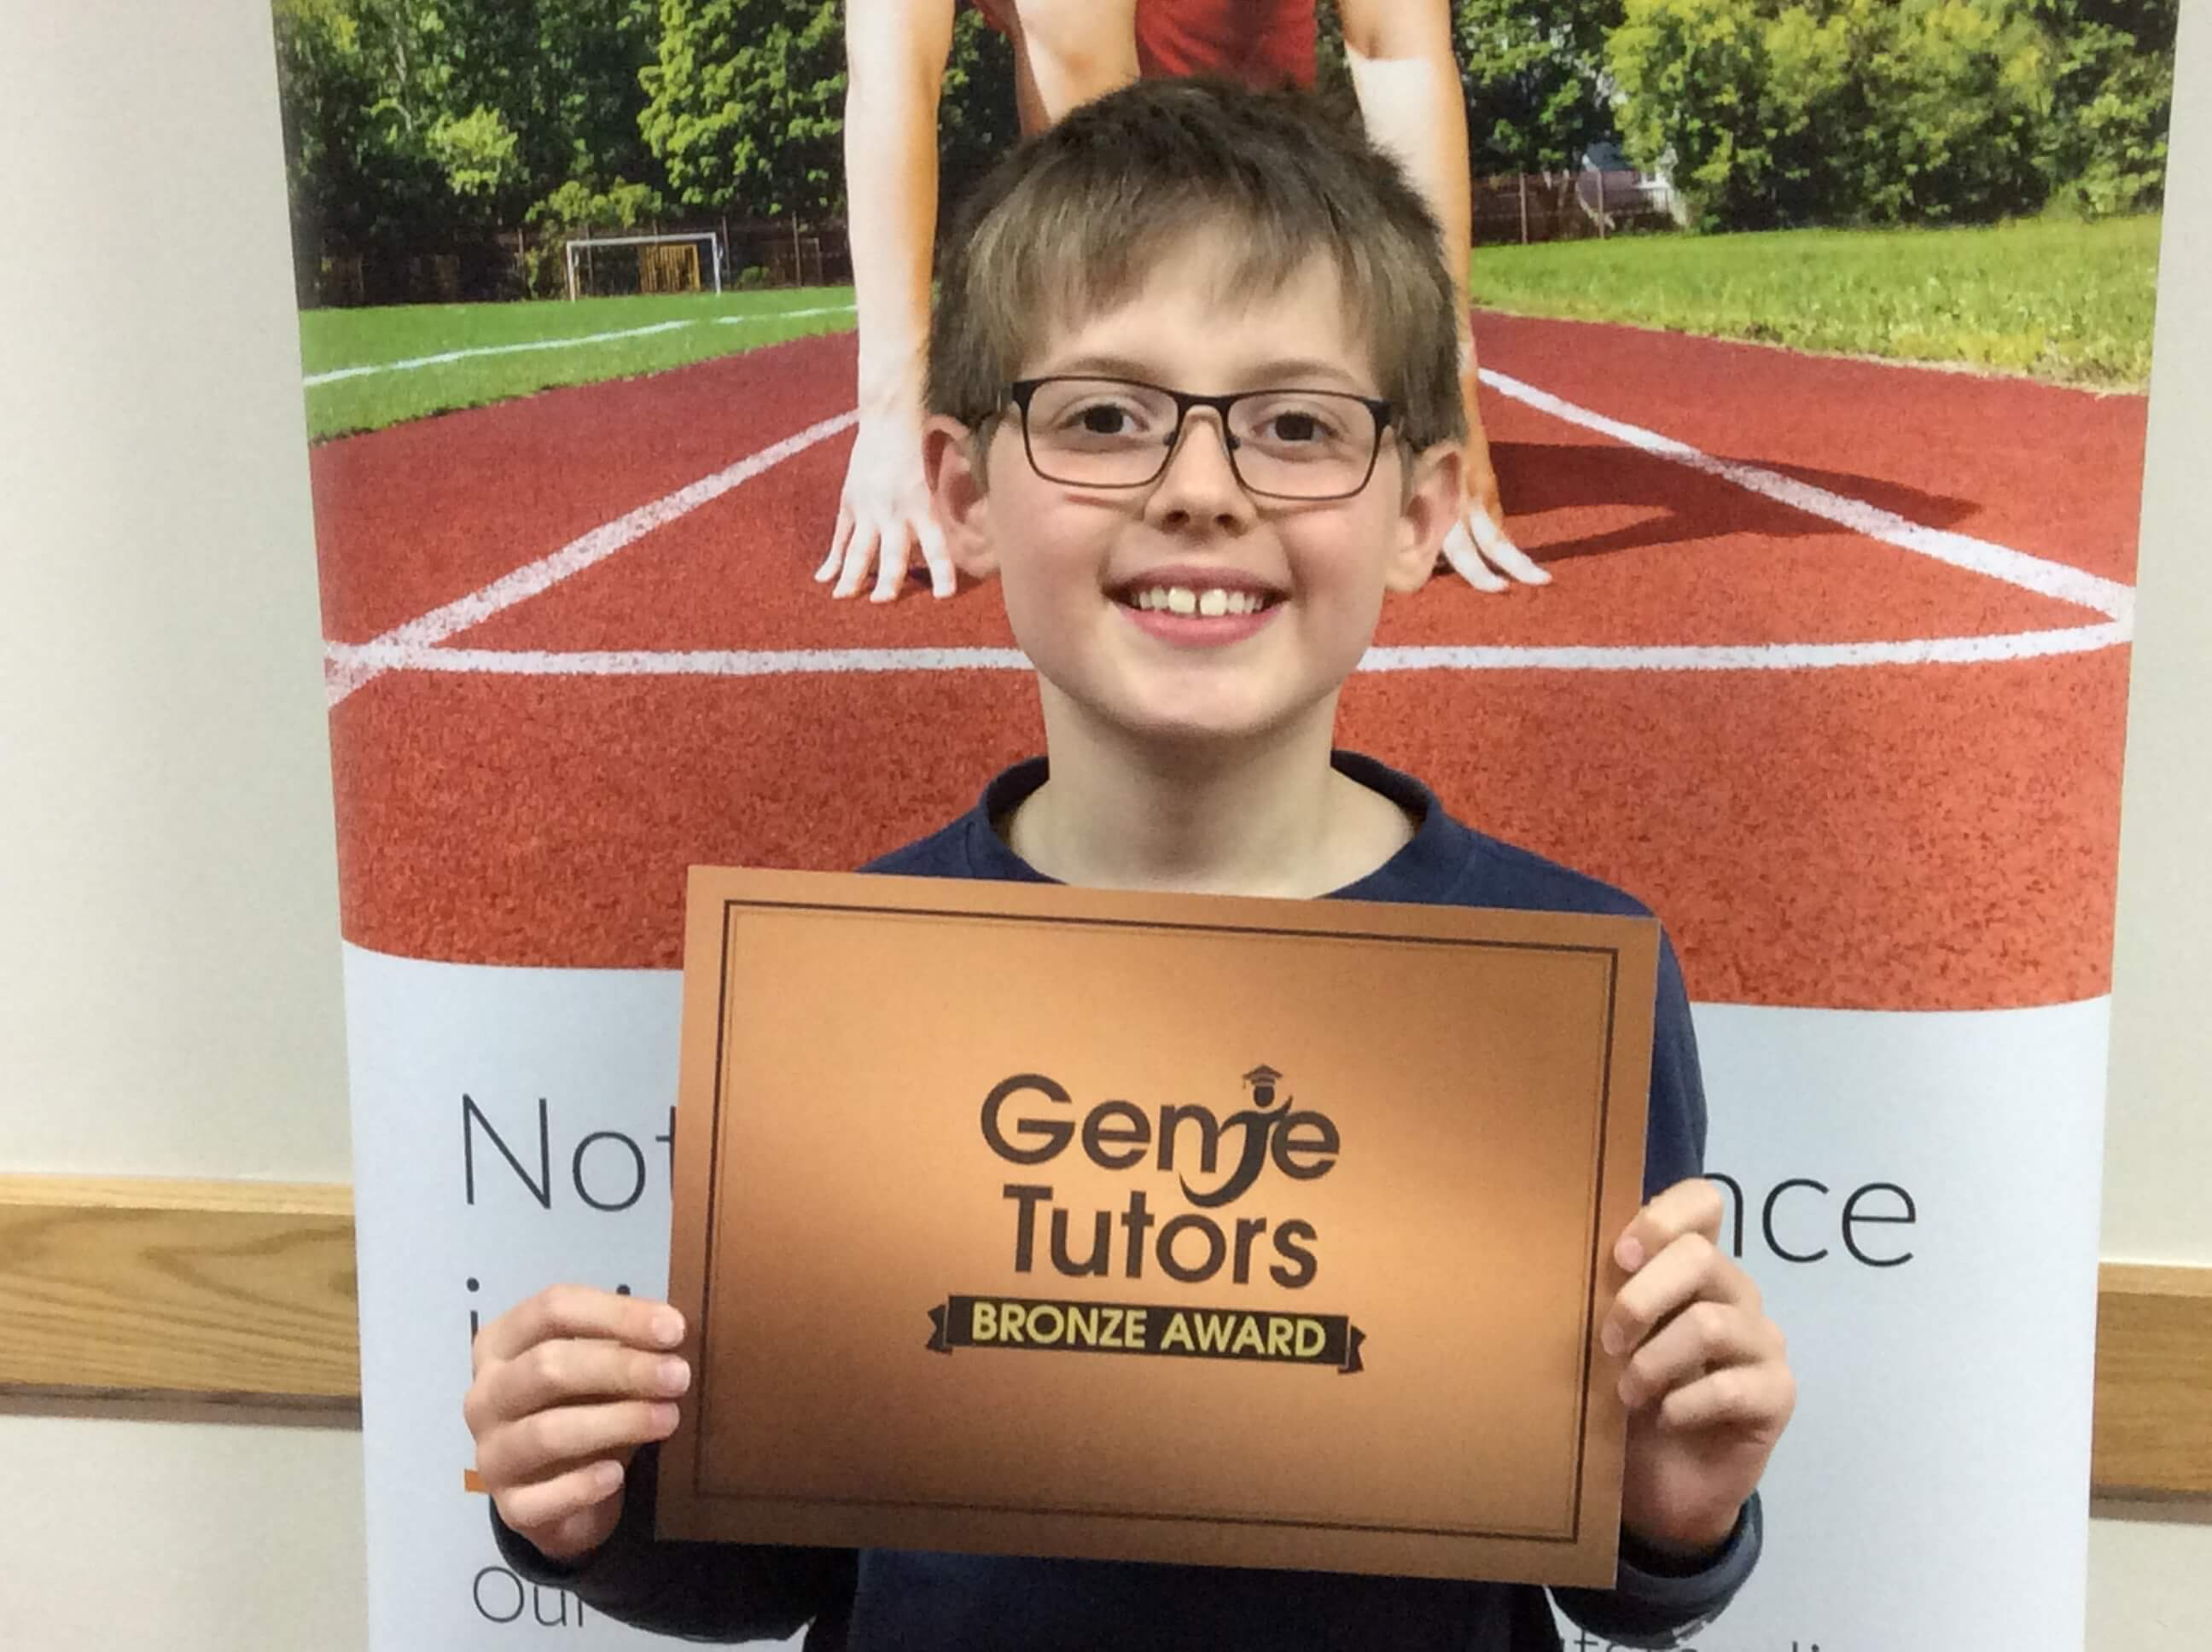 11+ at Genie Tutors Redditch